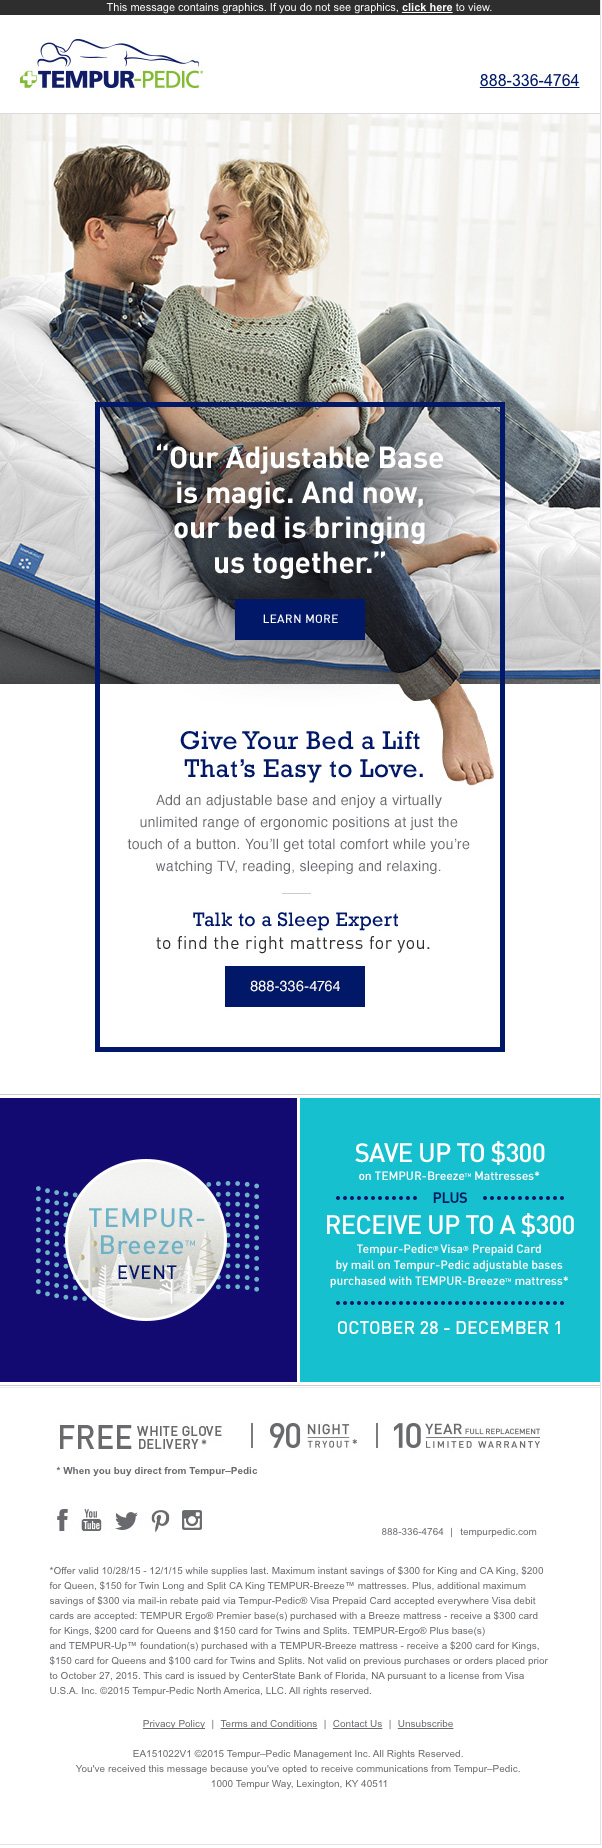 tempurpedic-newsletter